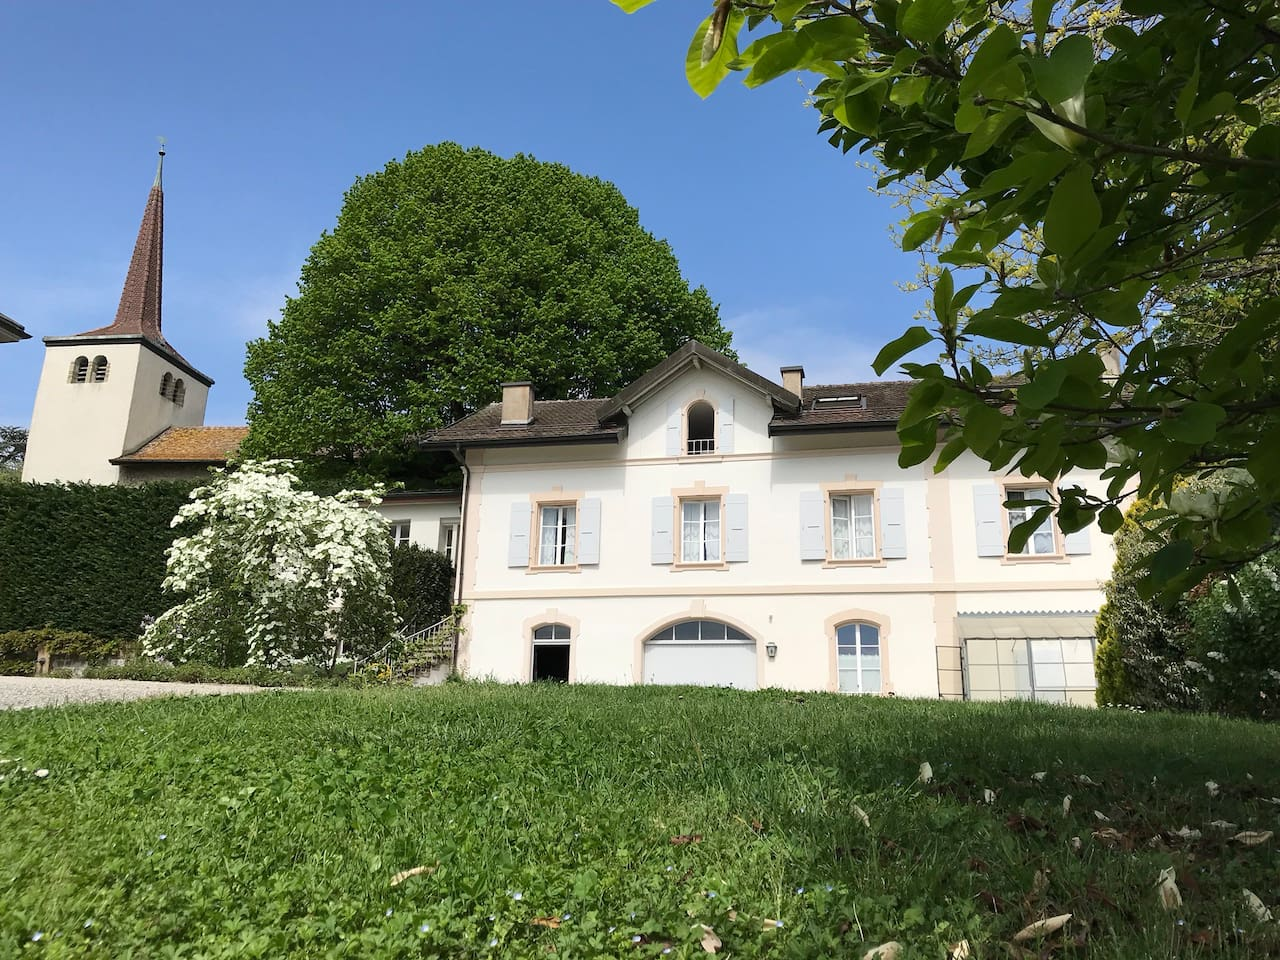 Private room with bathroom and shared kitchen (maximum with another guest) in the guest house of an old mansion. Private entrance. Garden and lake view. Two Minutes walk from railway station,  lake and shopping. Perfect location, calm and comfortable.